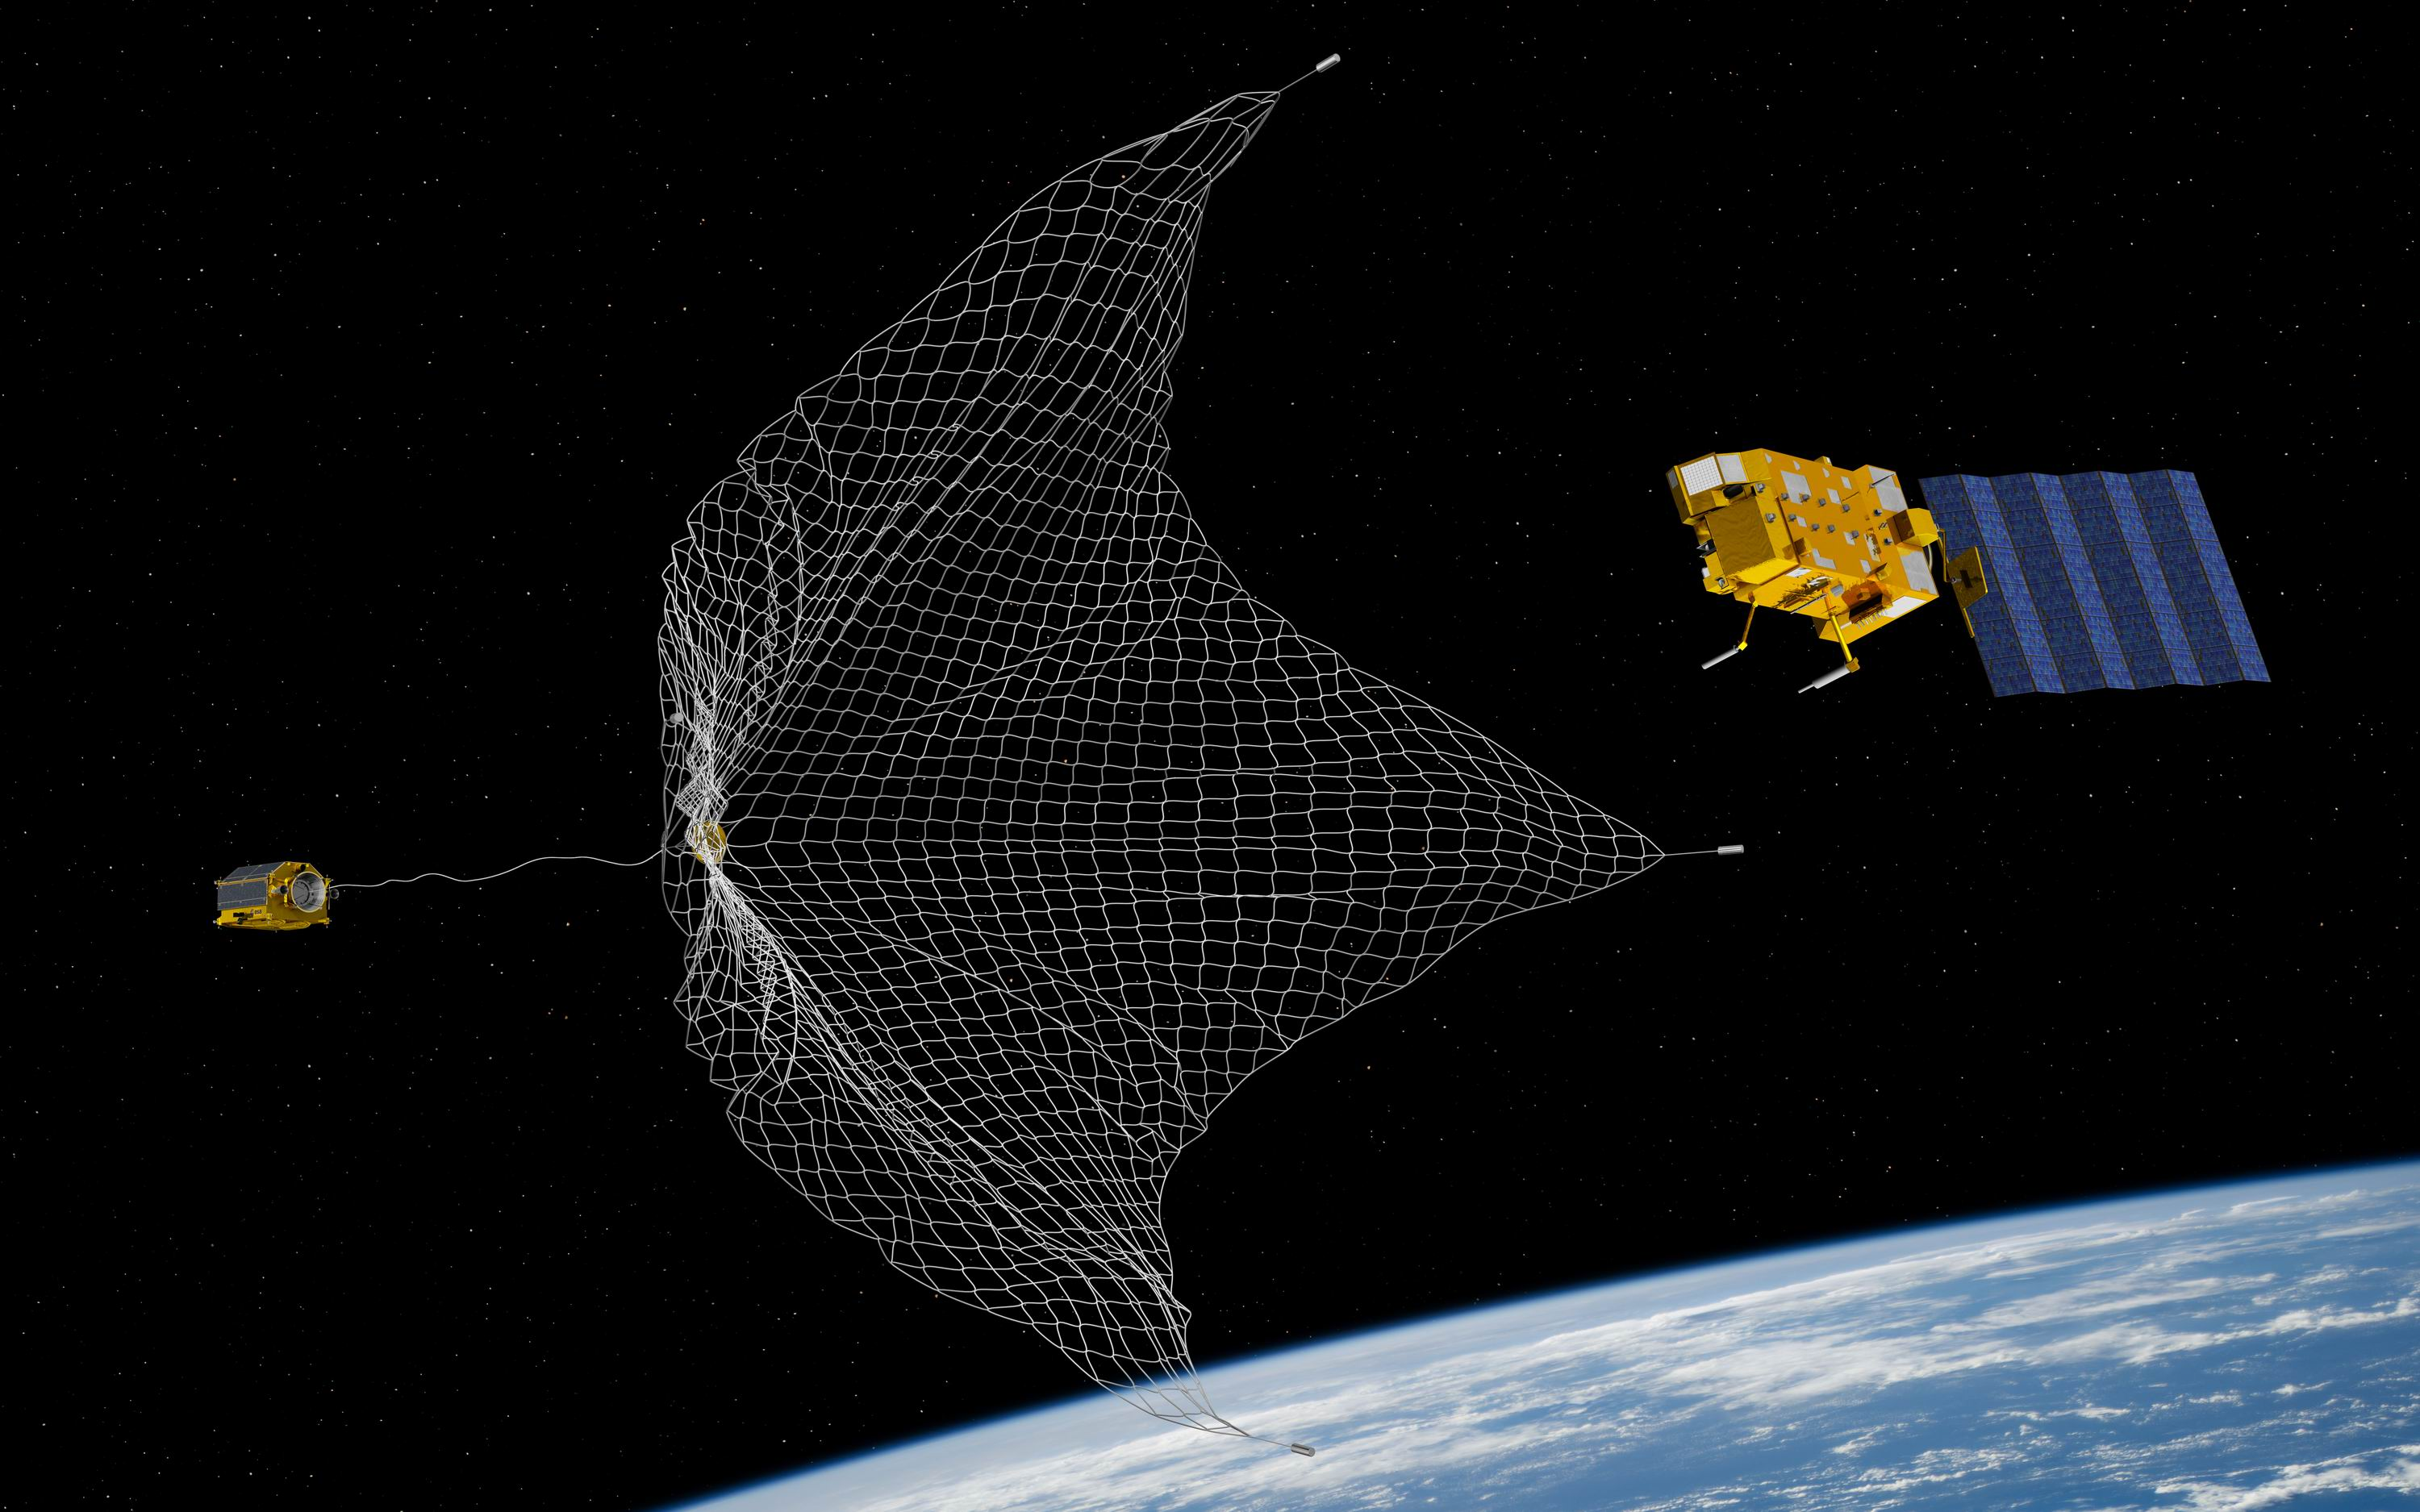 Space debris: catch it if we can | The Clean Space blog